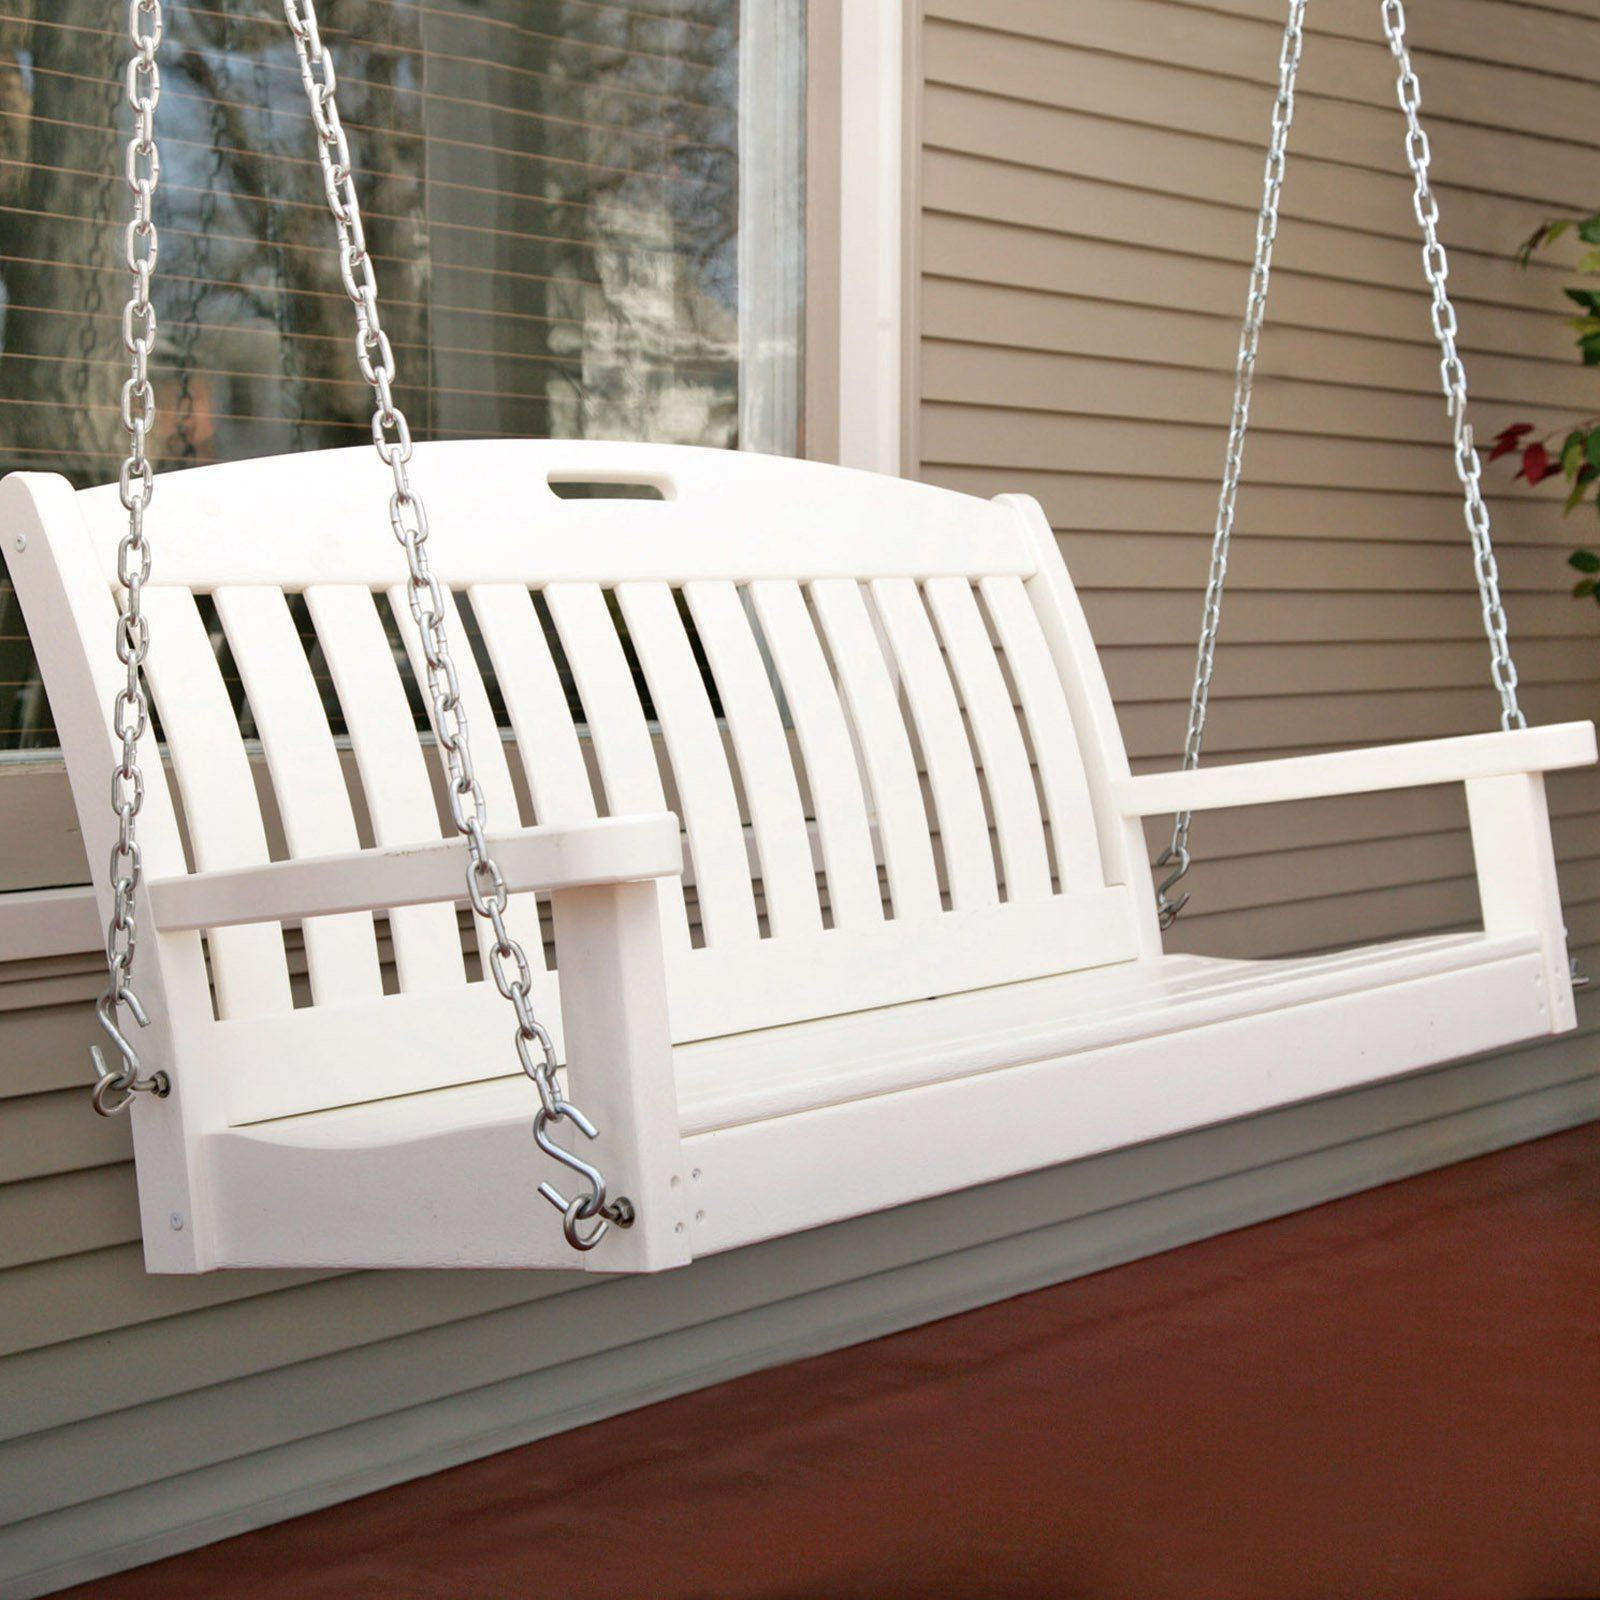 POLYWOOD Nautical 4 ft Recycled Plastic Porch Swing White